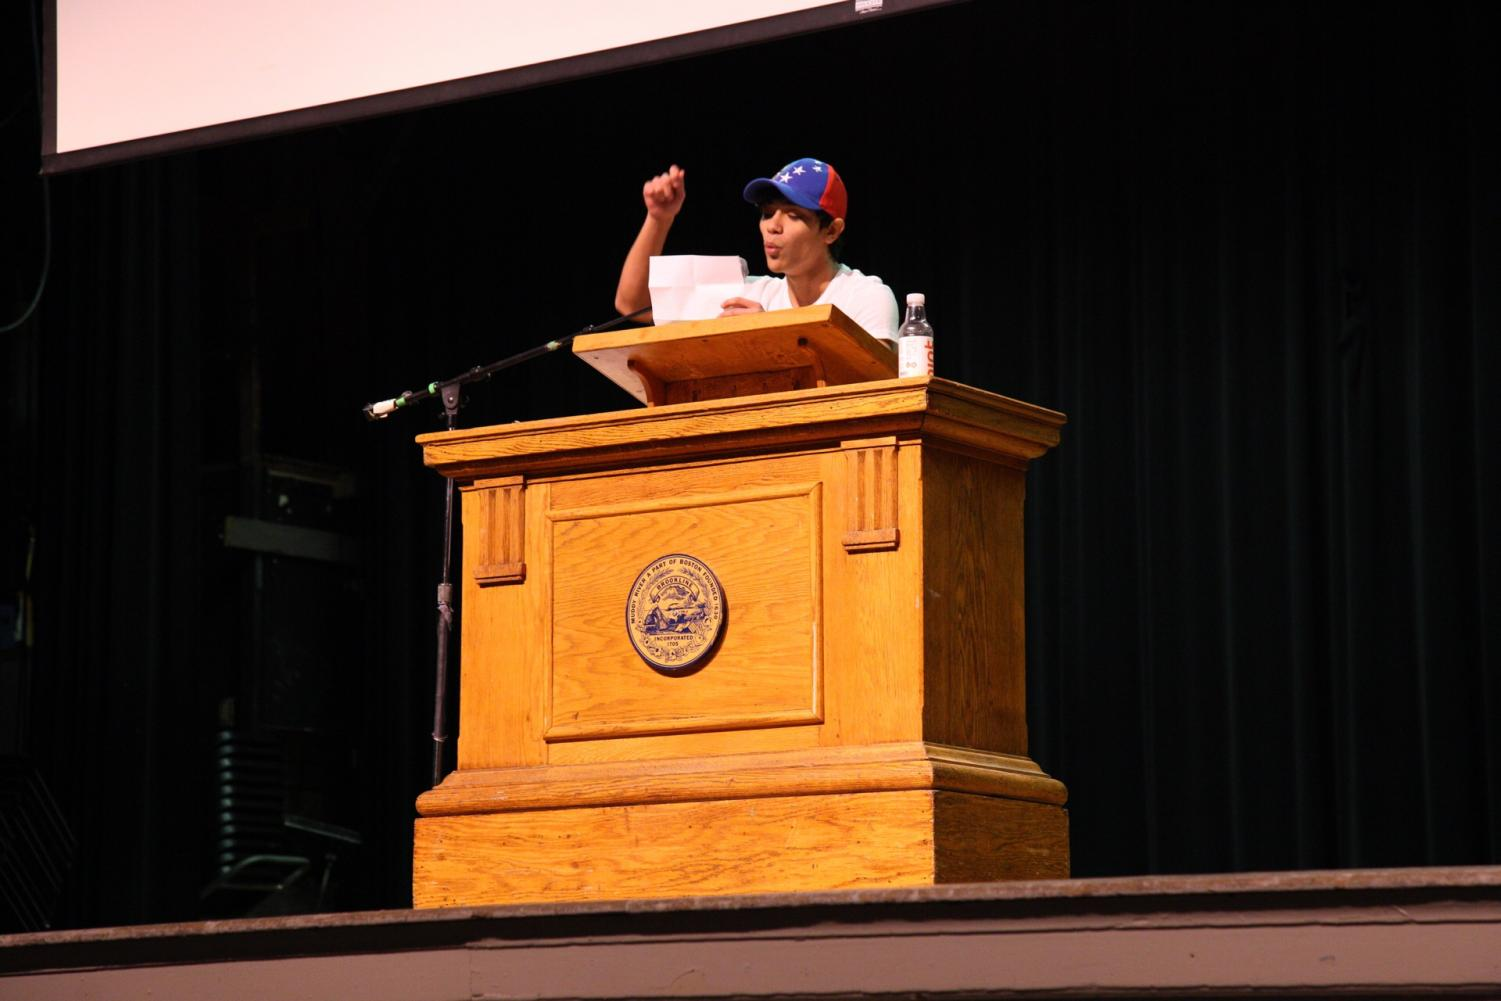 Junior Diego Echeverria de Cordova speaks from his heart about his homeland, Venezuela, during the E-block assembly about immigration. Echeverria de Cordova was one of many student speakers that spoke at Asking for Courage Day. CONTRIBUTED BY SANDER SOROK